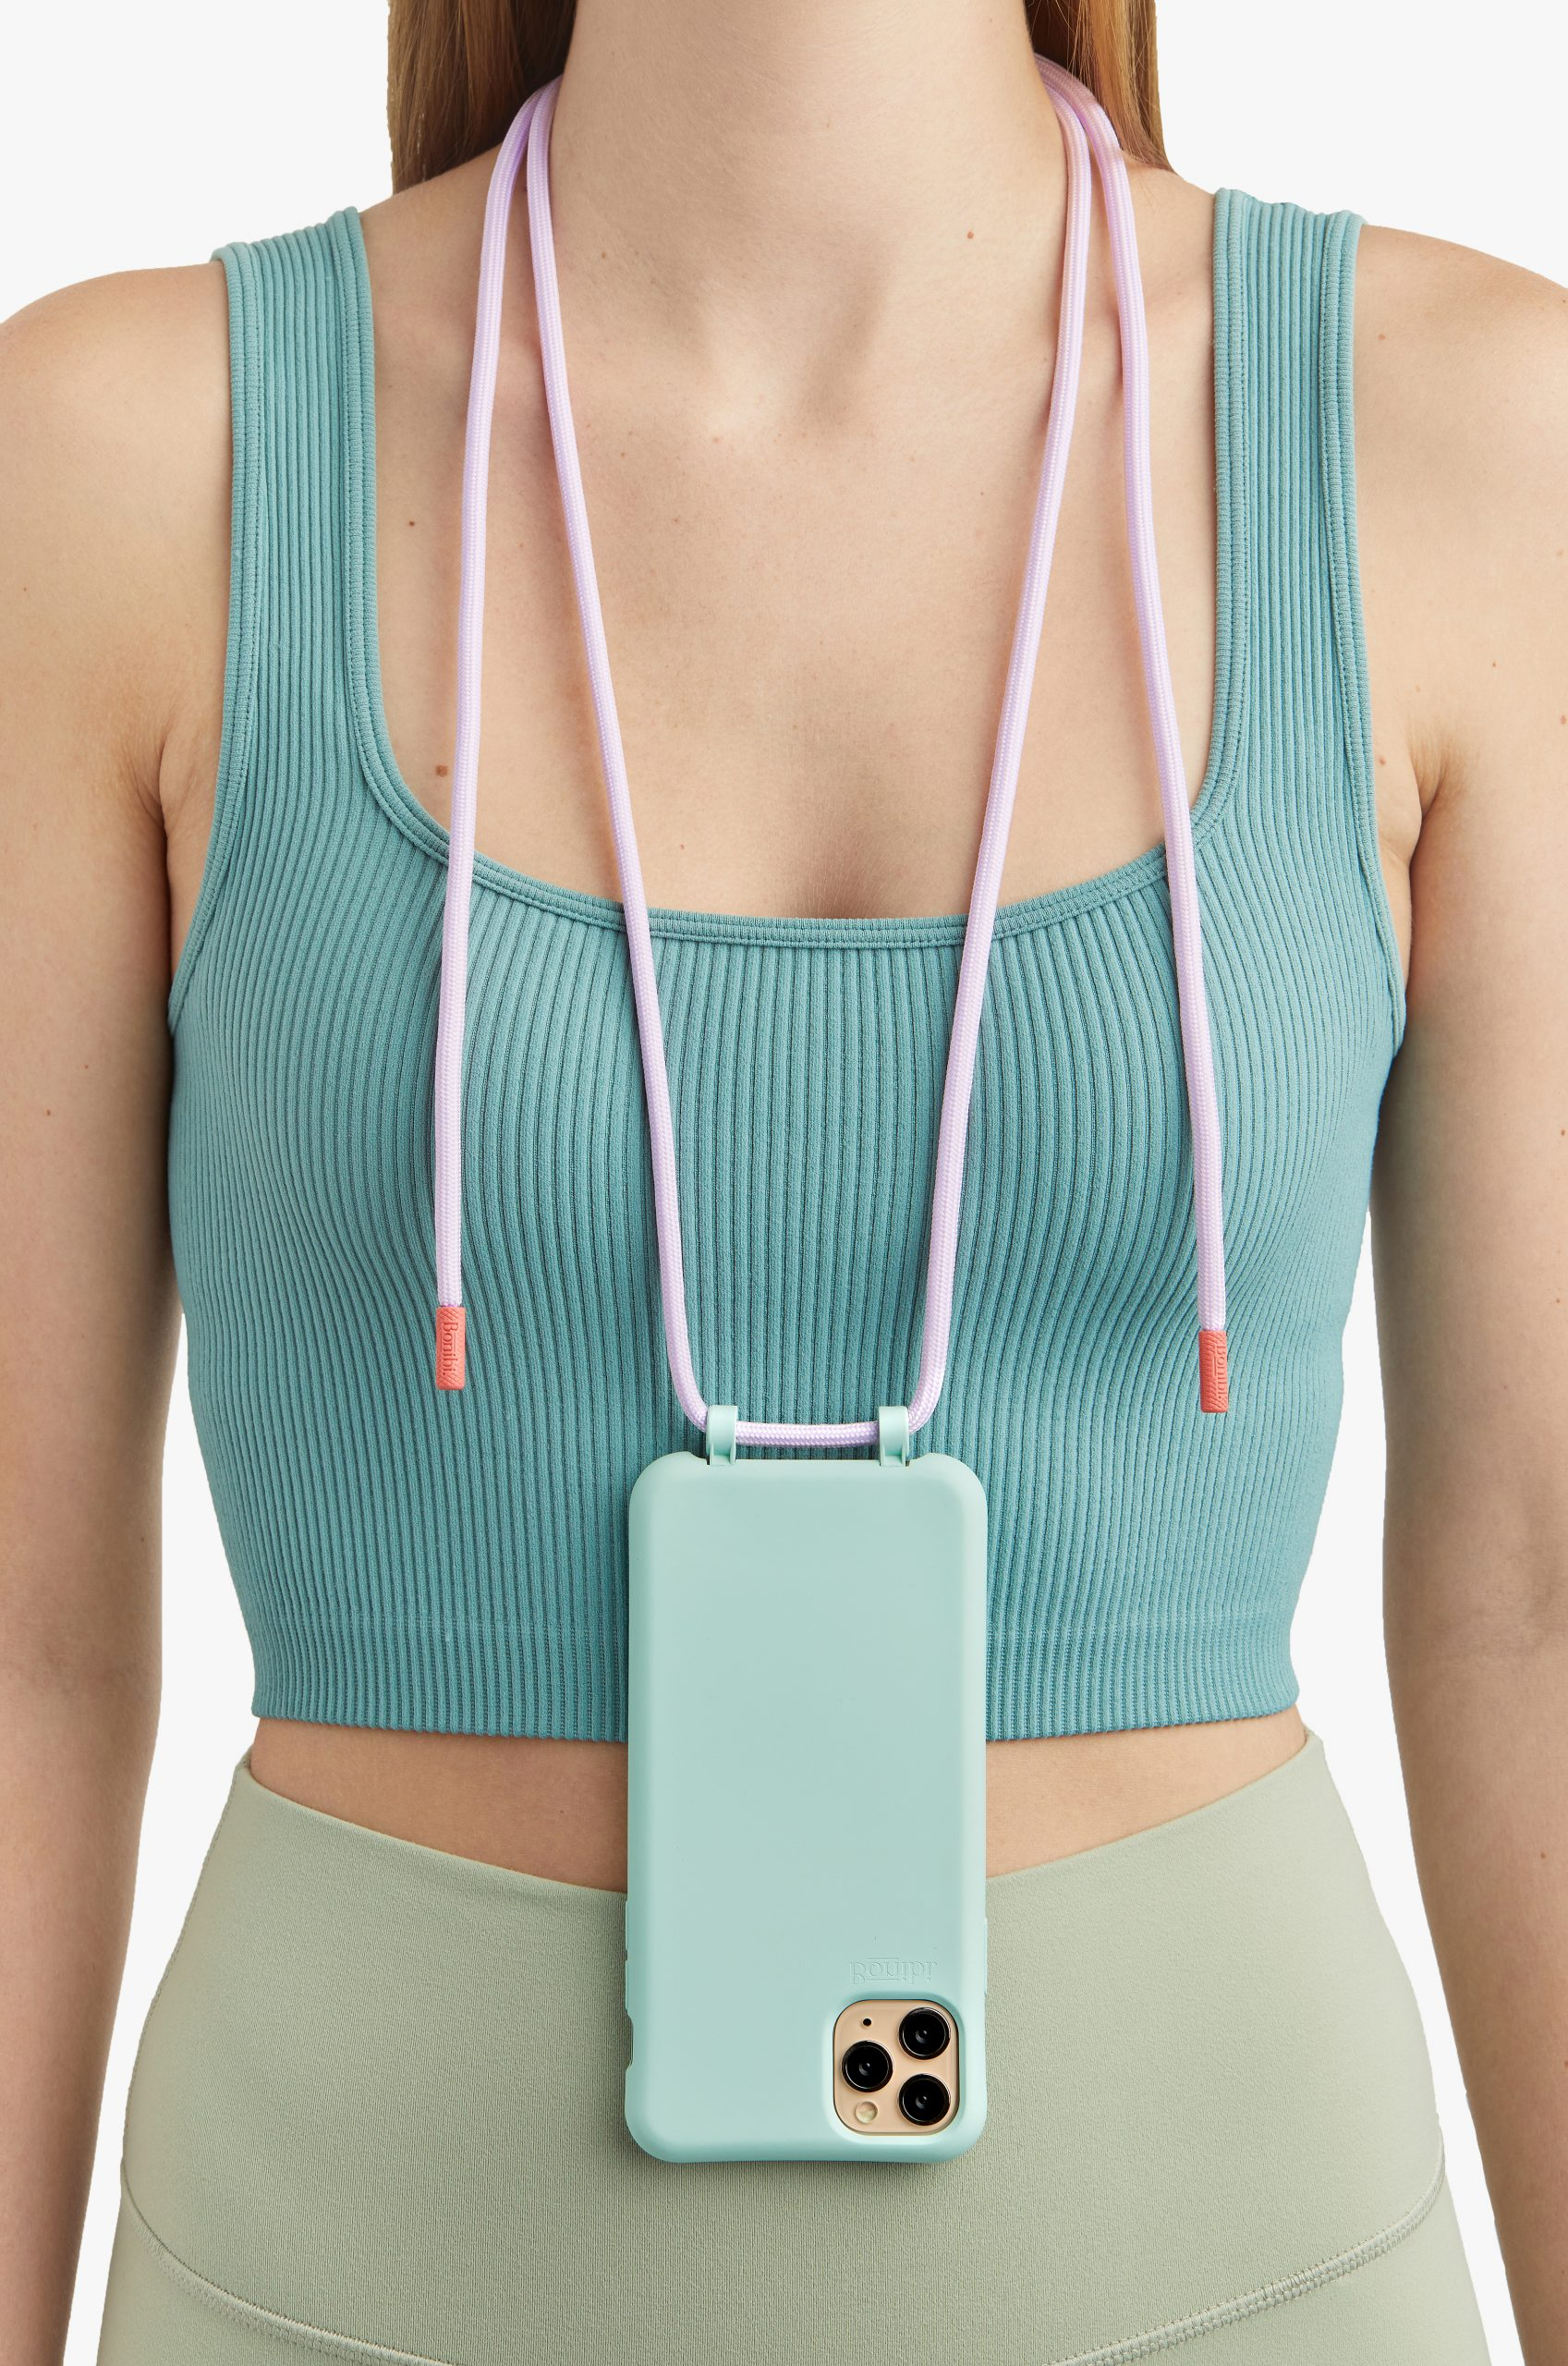 Bonibi-Crossbody-Phone-Case-iPhone-Seafoam-Case-Lilac-Cord-Coral-Hardware-Necklace-Lanyard-Lifestyle-Phone-Case-With-Strap-Neck Holder-Card Holder-Tether-Carrier-Functional